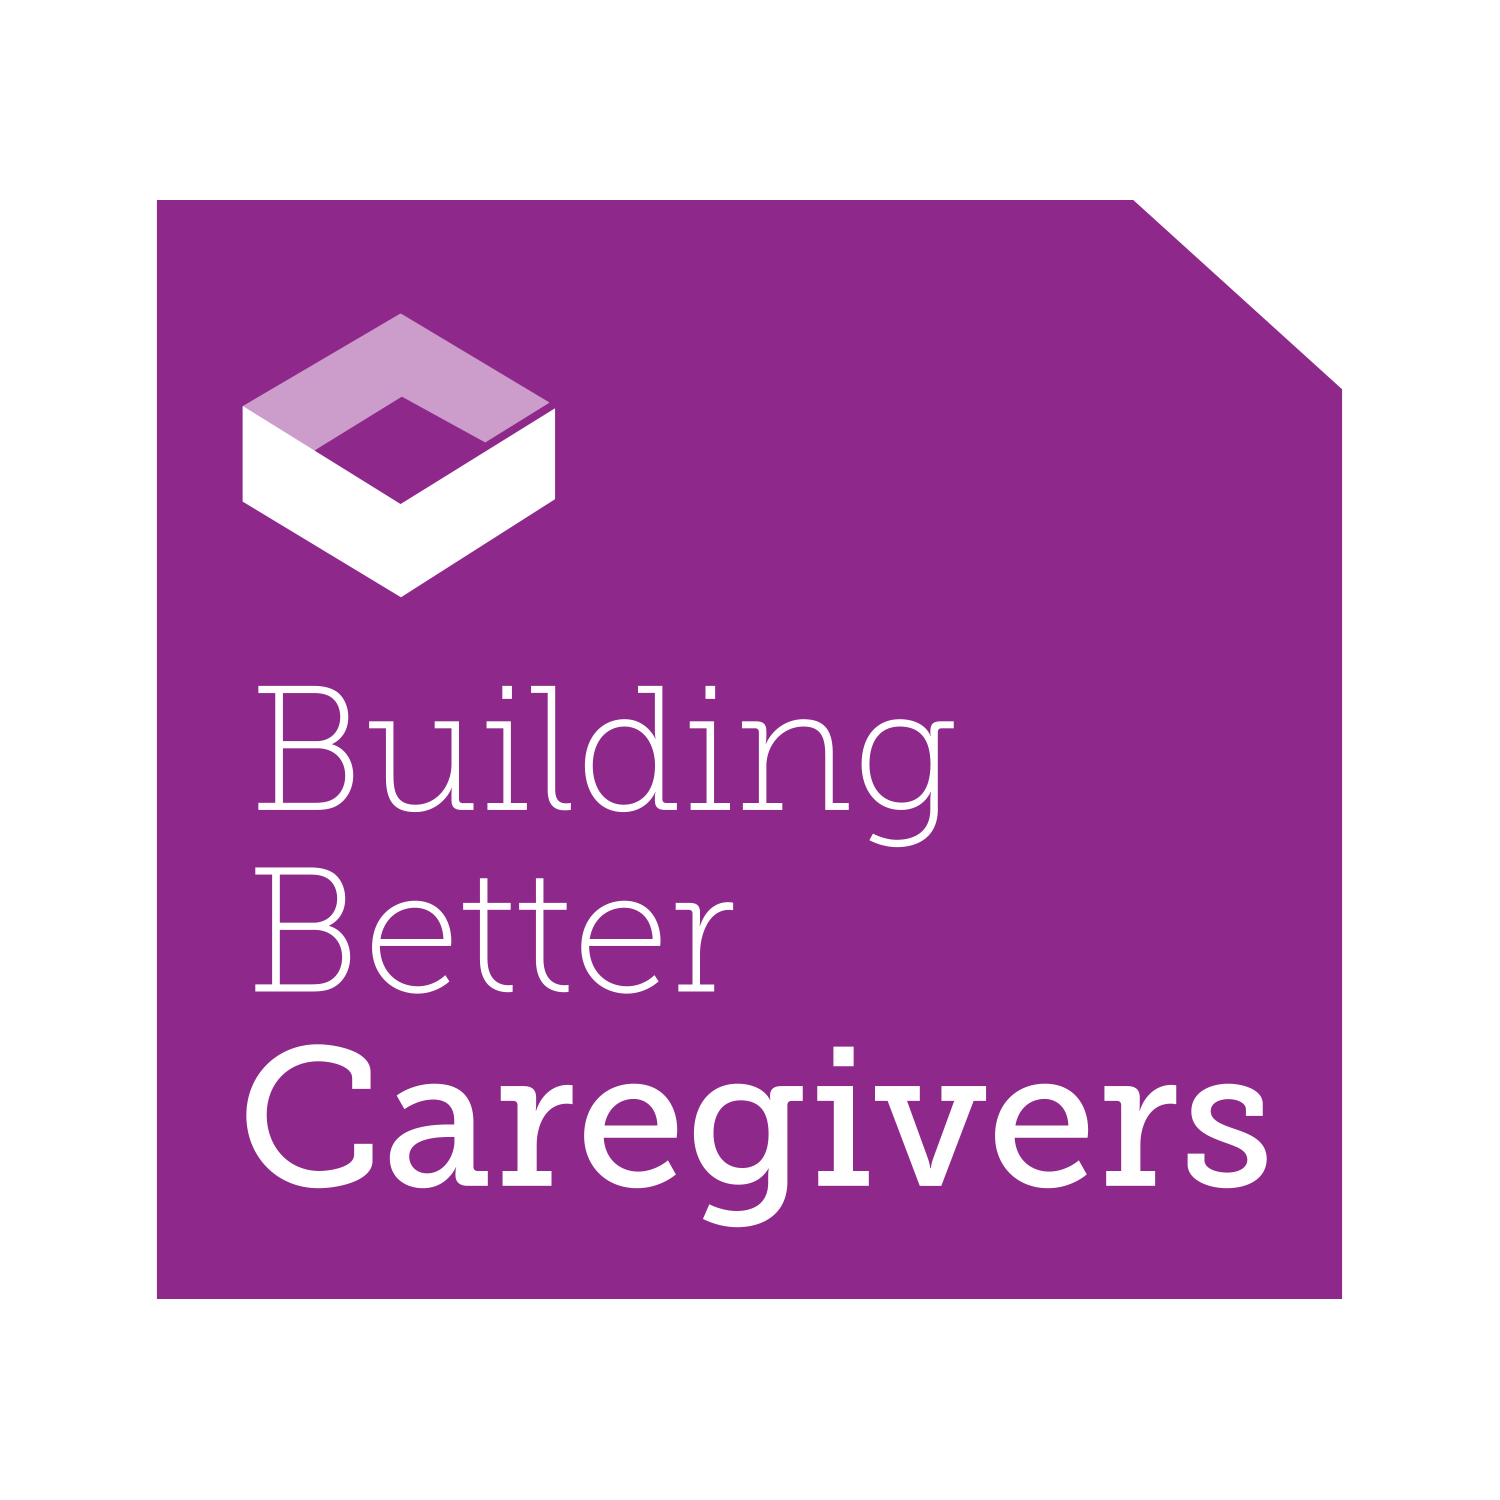 Build_Better_Caregivers_square_hires